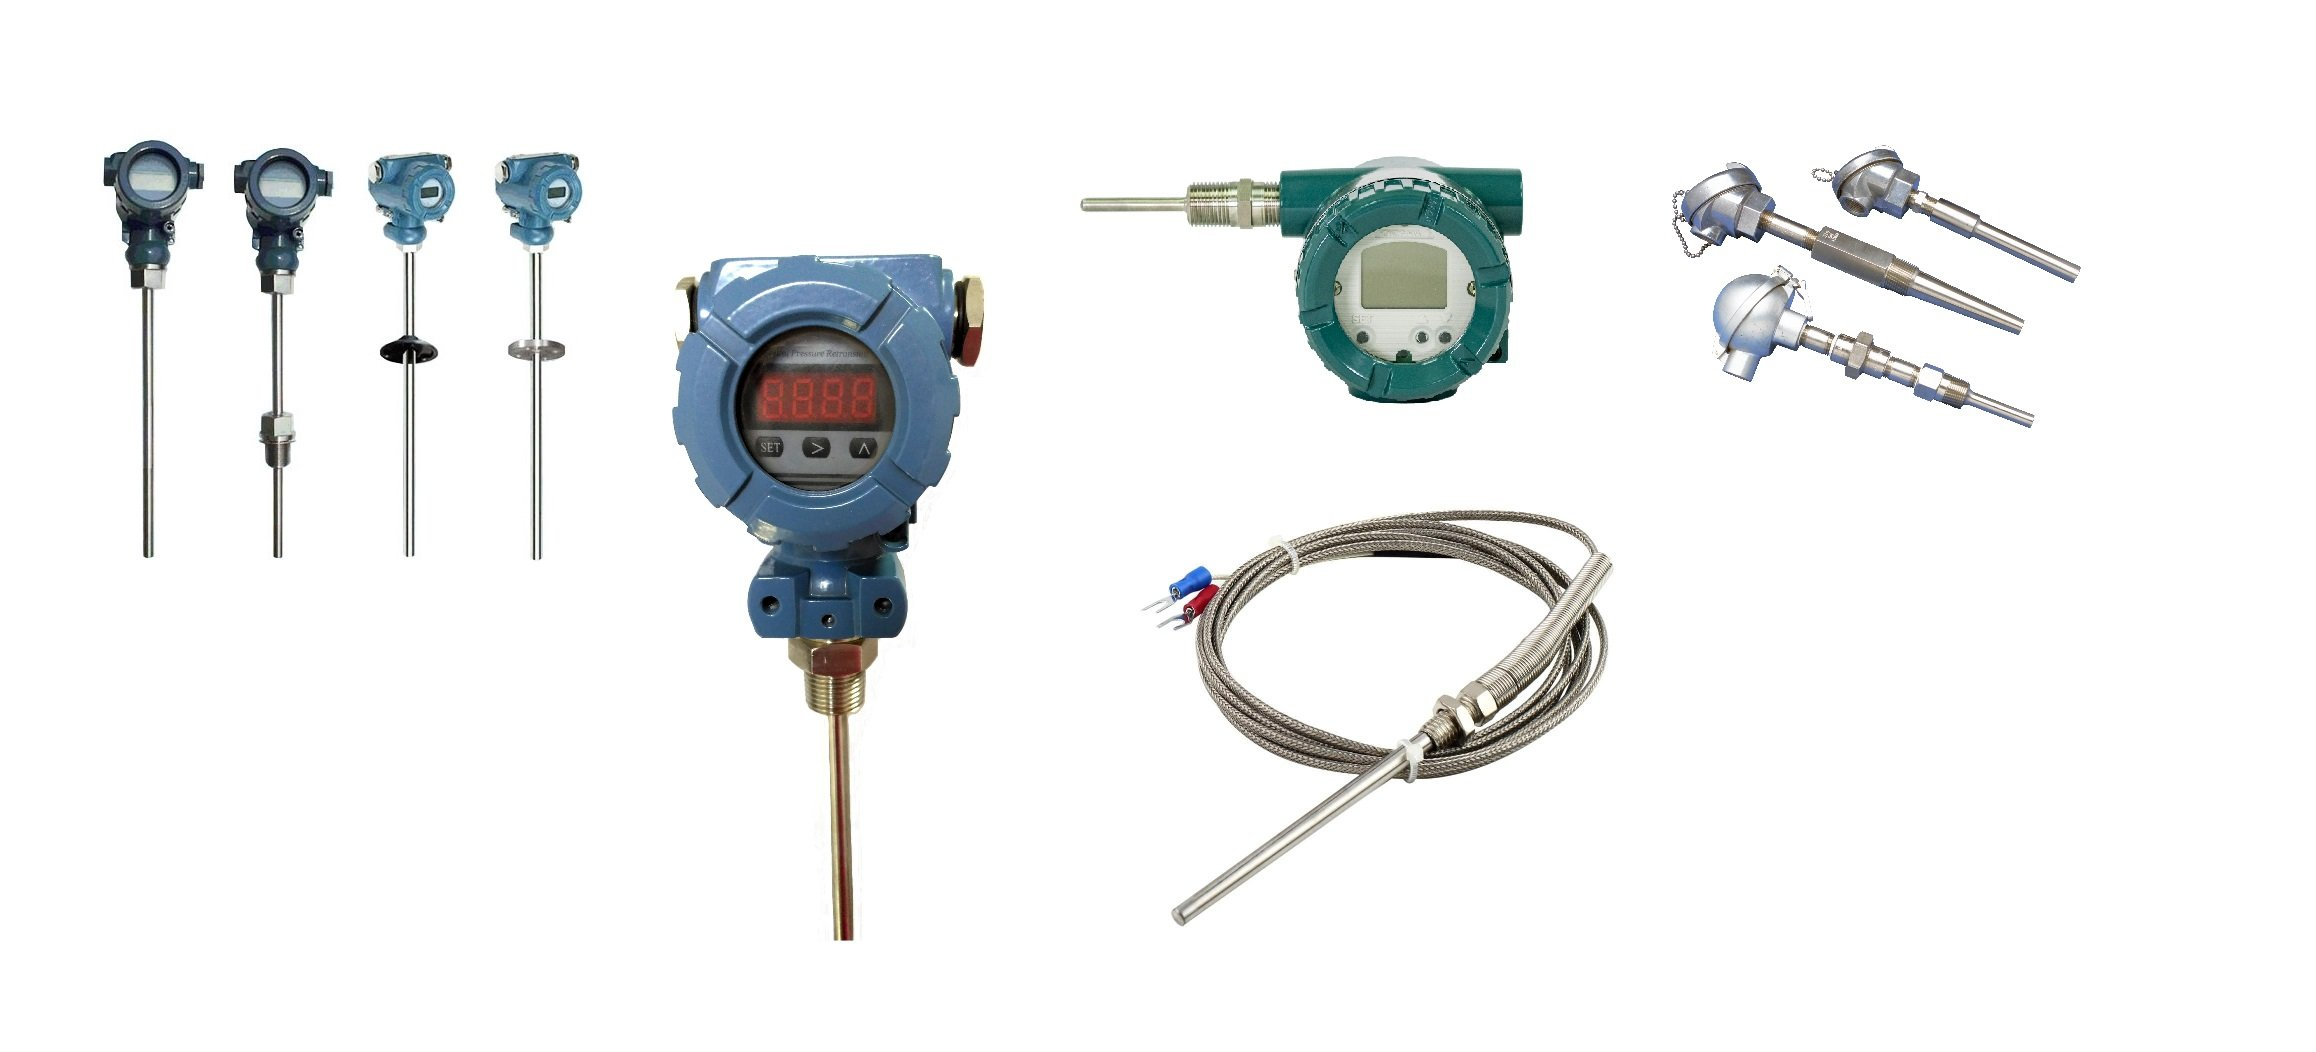 Types Of A Temperature Transmitter